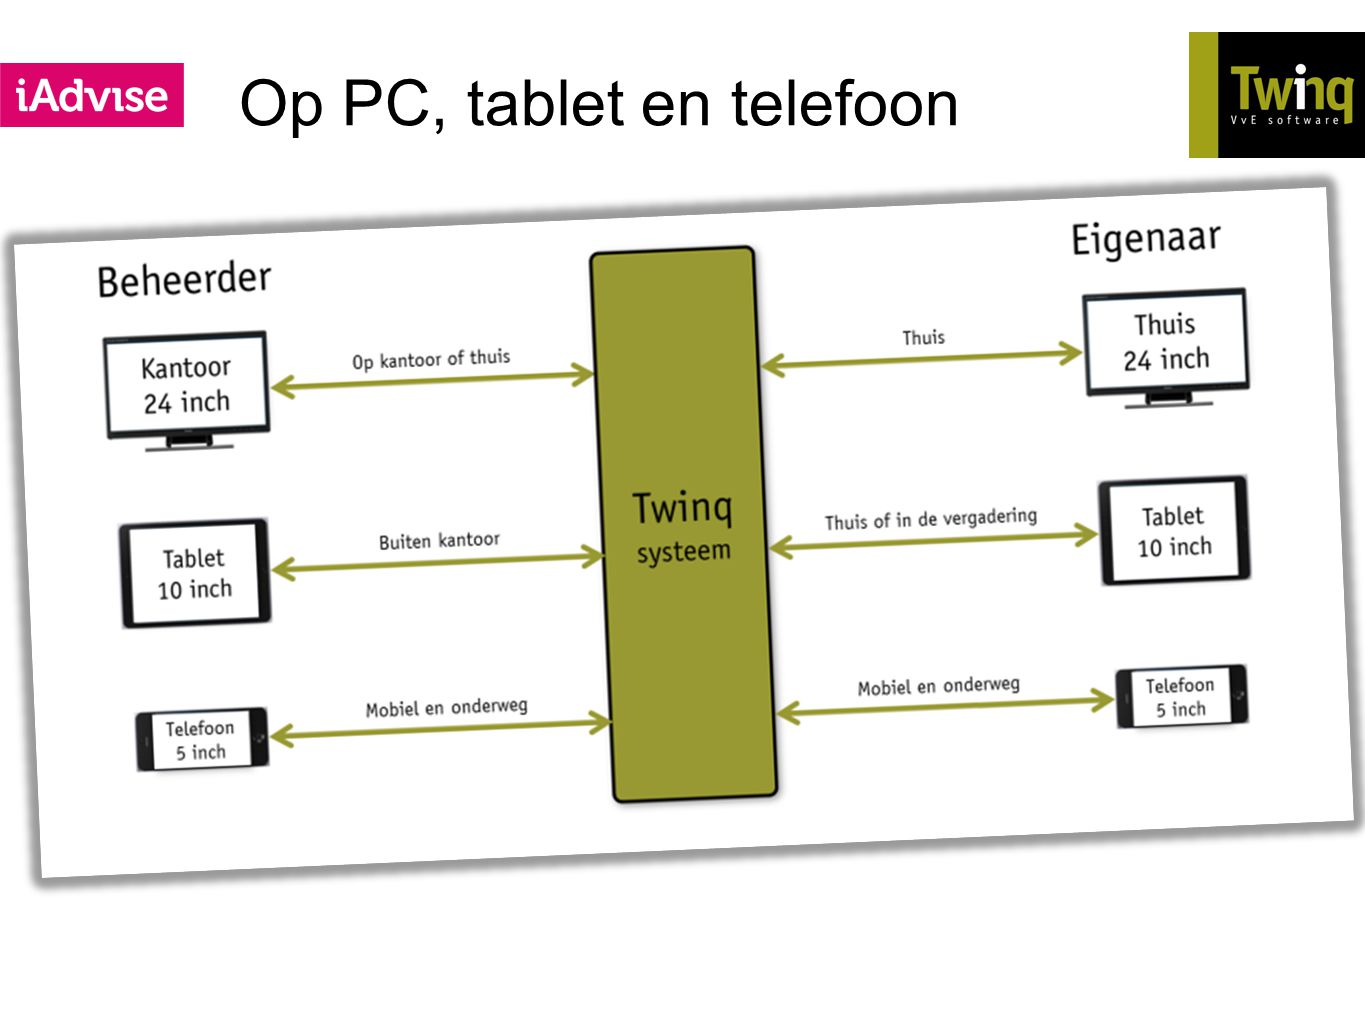 Op PC, tablet en telefoon